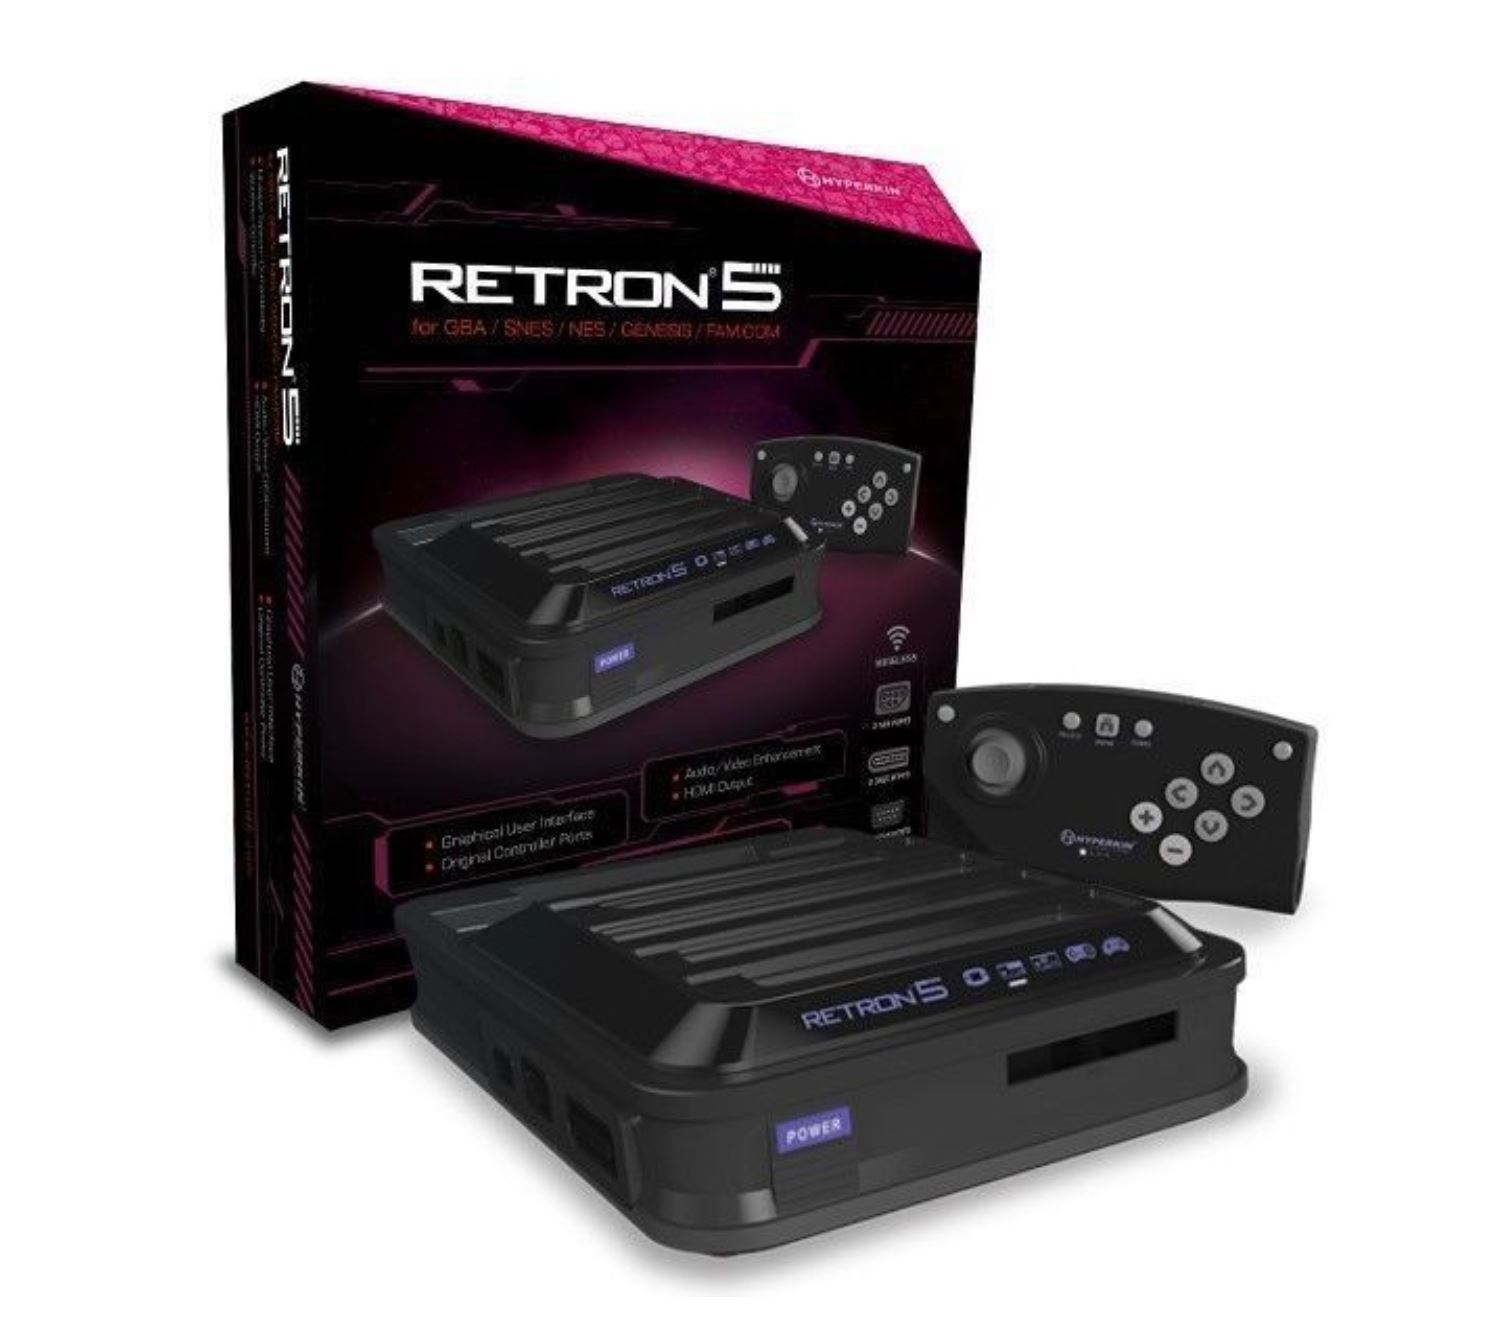 Hyperkin RetroN 5 Retro Video Gaming System Sega NES SNES Gameboy Advance HD